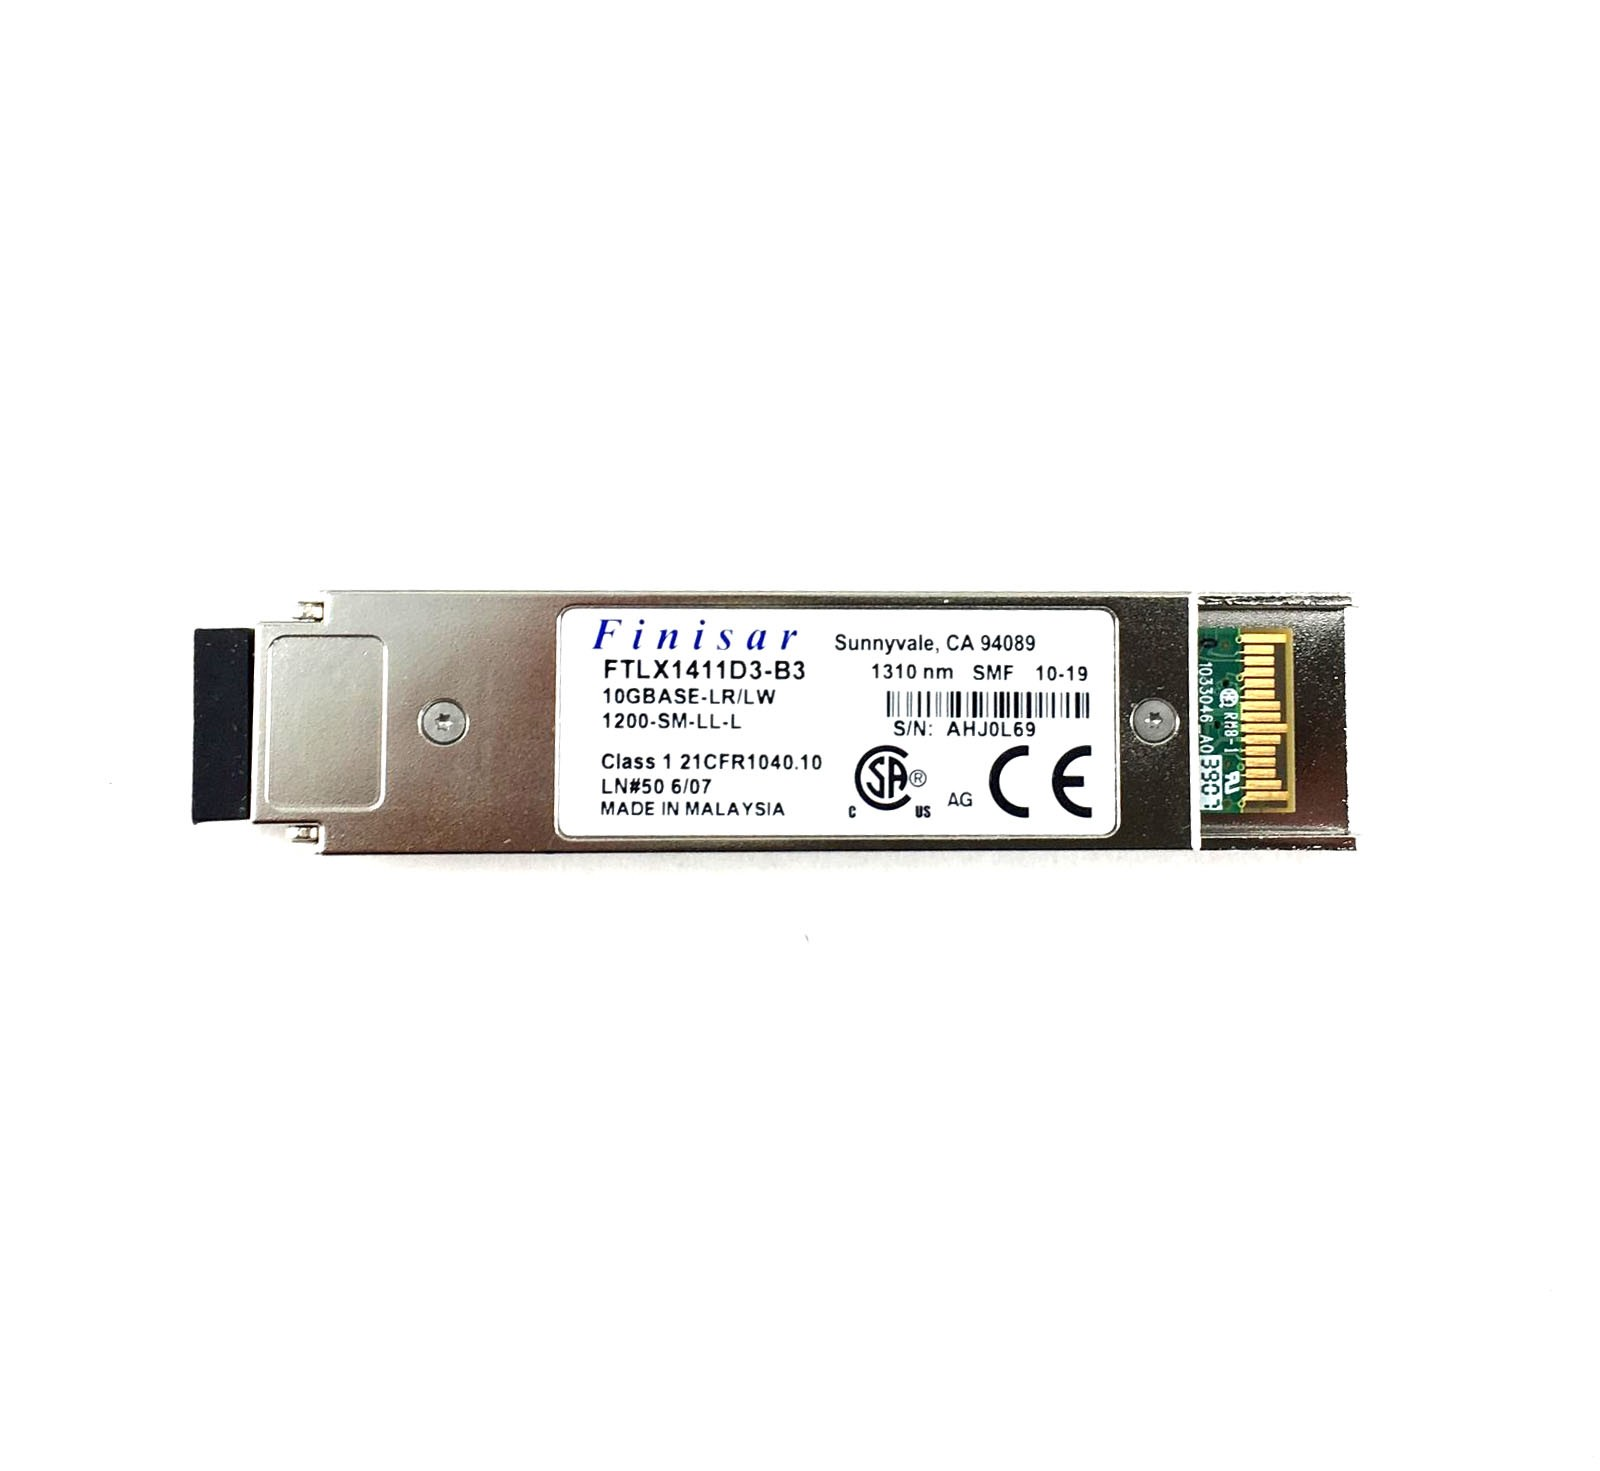 Finisar 10Gbps 10Km Datacom XFP Optical Transceiver (FTLX1411D3-B3)